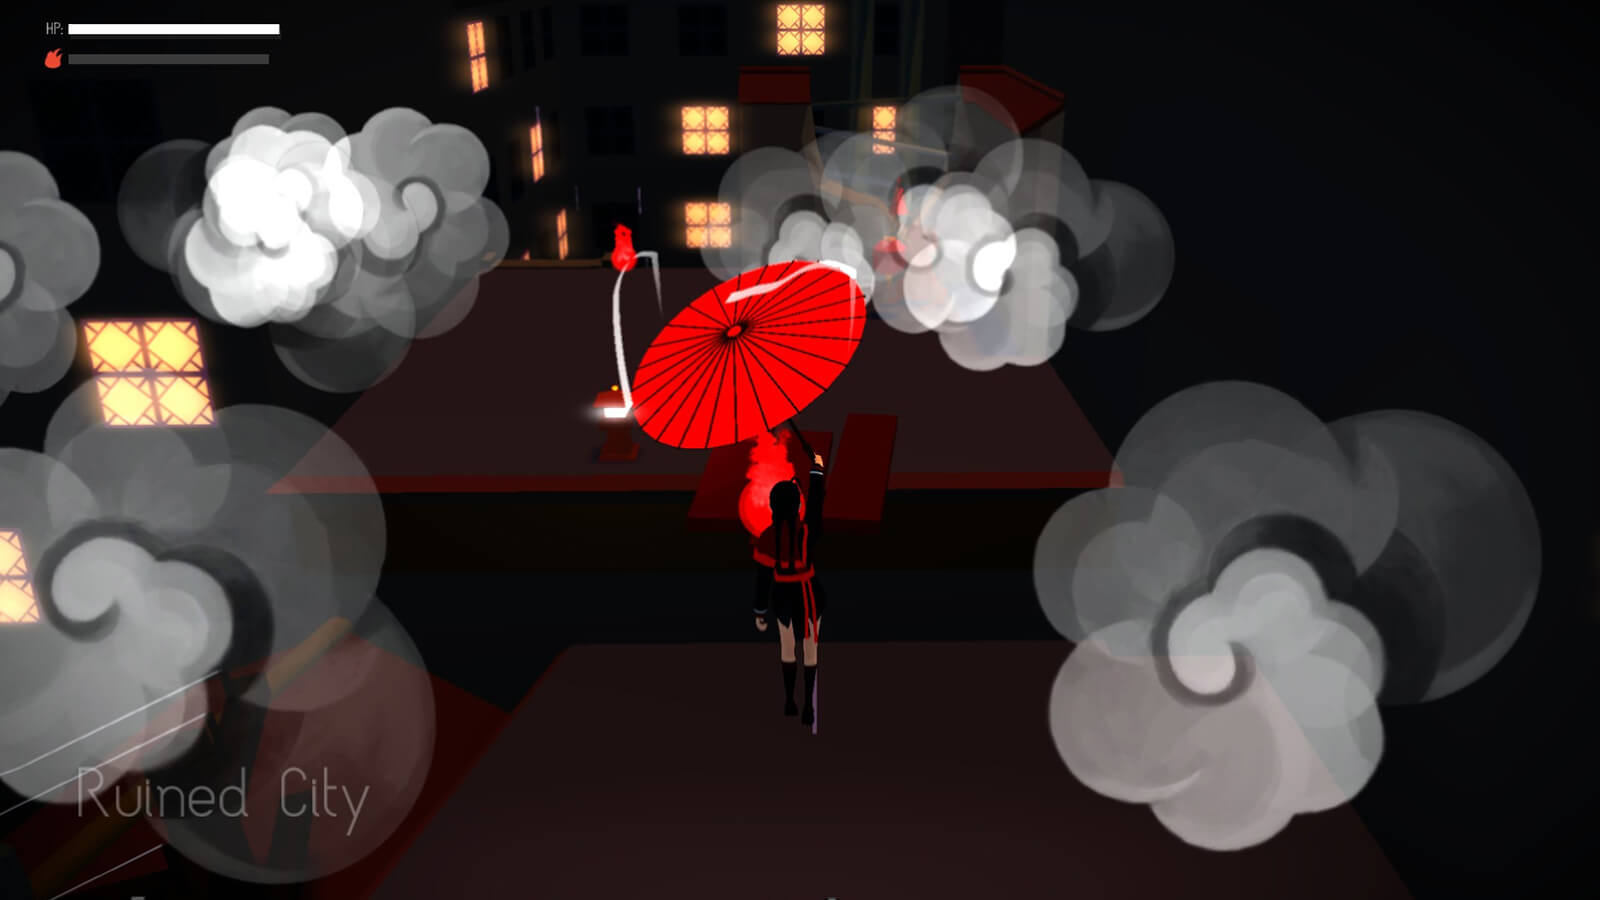 A girl in a red-and-black uniform held aloft by an open red umbrella, drifts in the air to a smoky apartment rooftop.